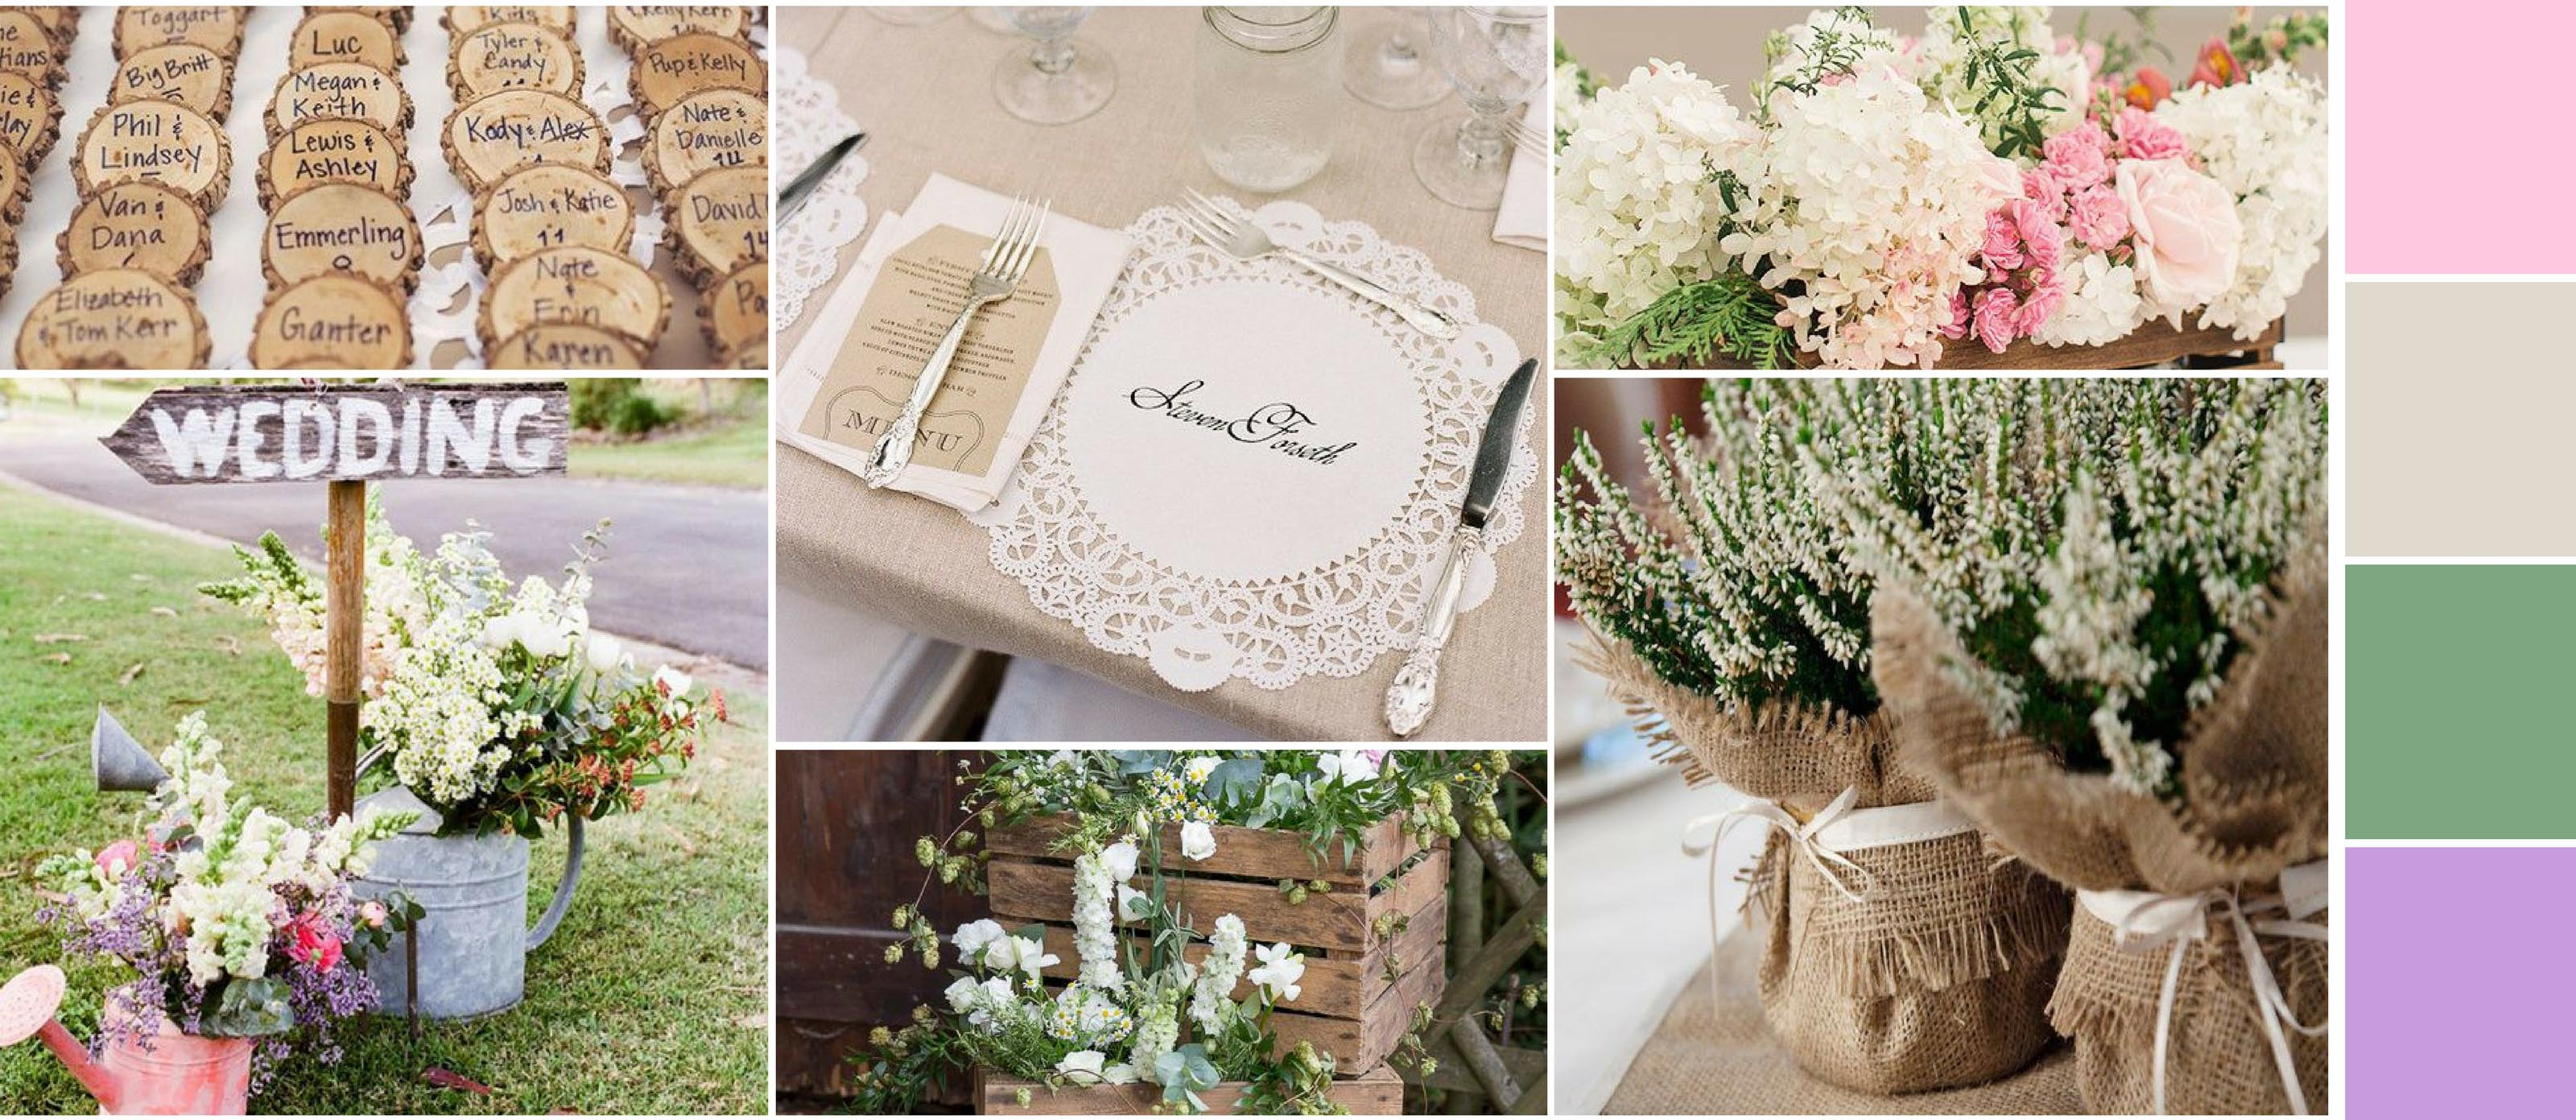 Get inspired by Our Rustic Spring Wedding Inspiration Board | Fun365